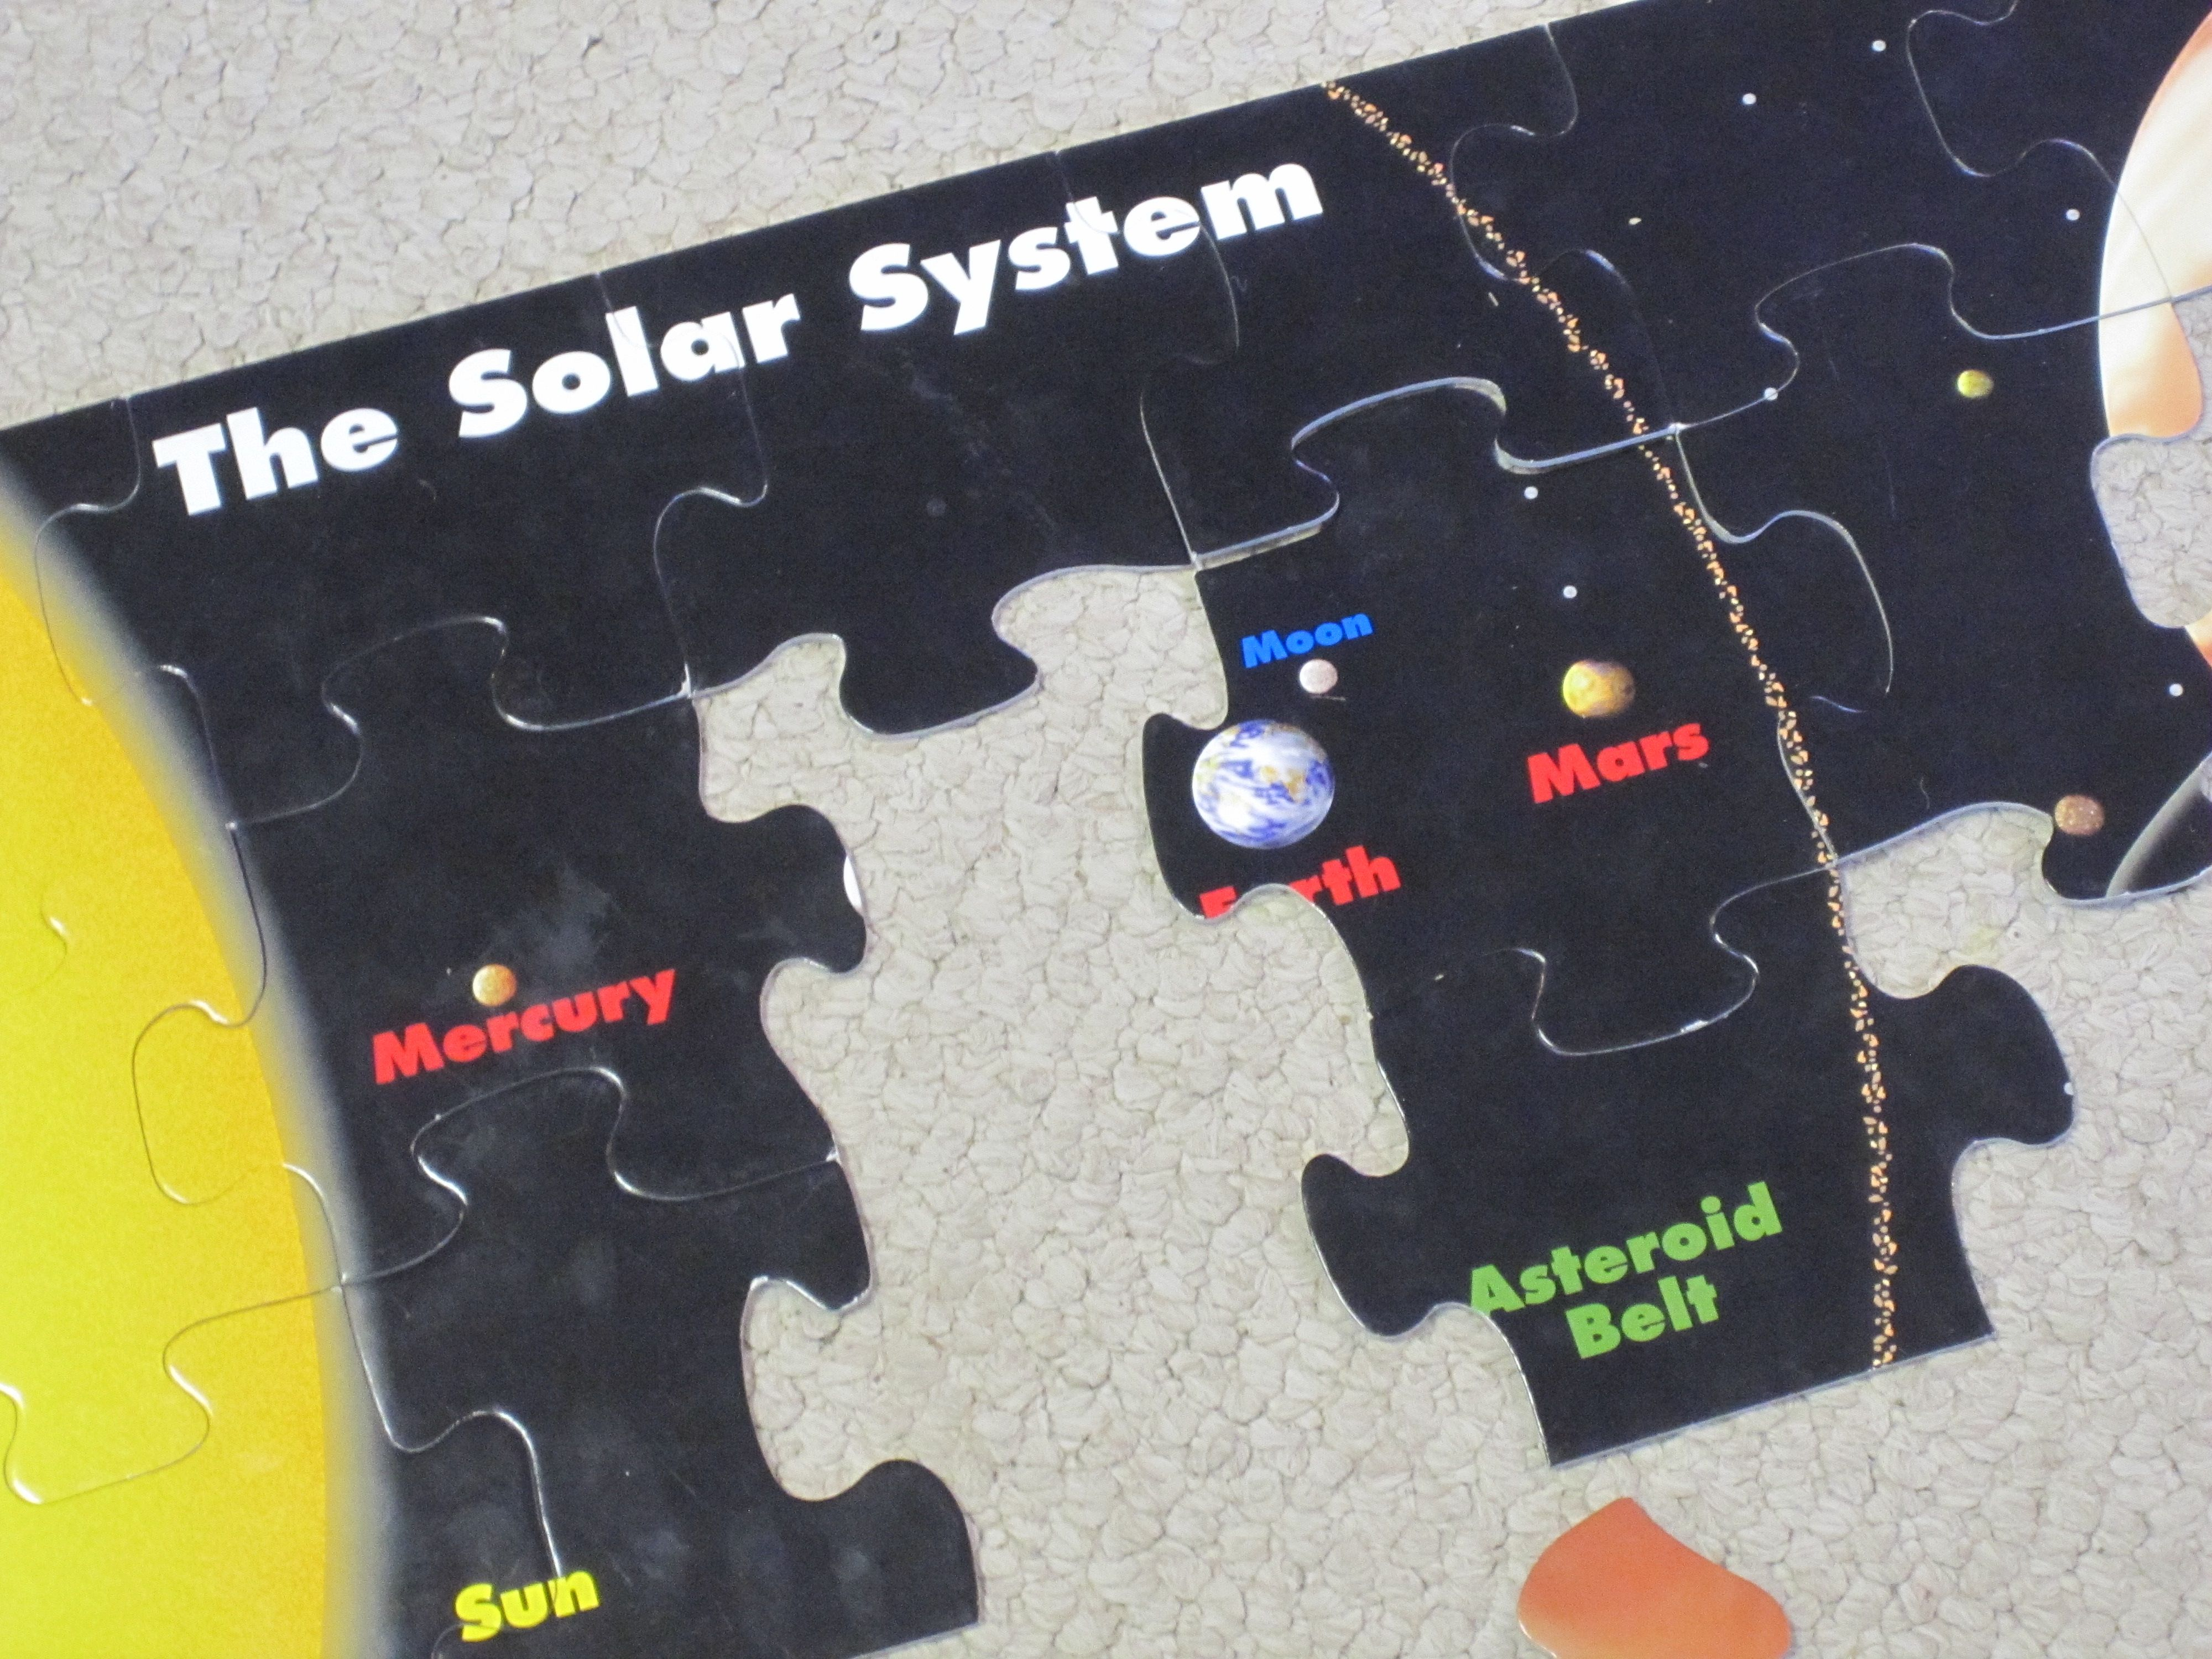 Solar System Puzzle & Solar System Fun Crossword - Pics about space 25forcollege.com